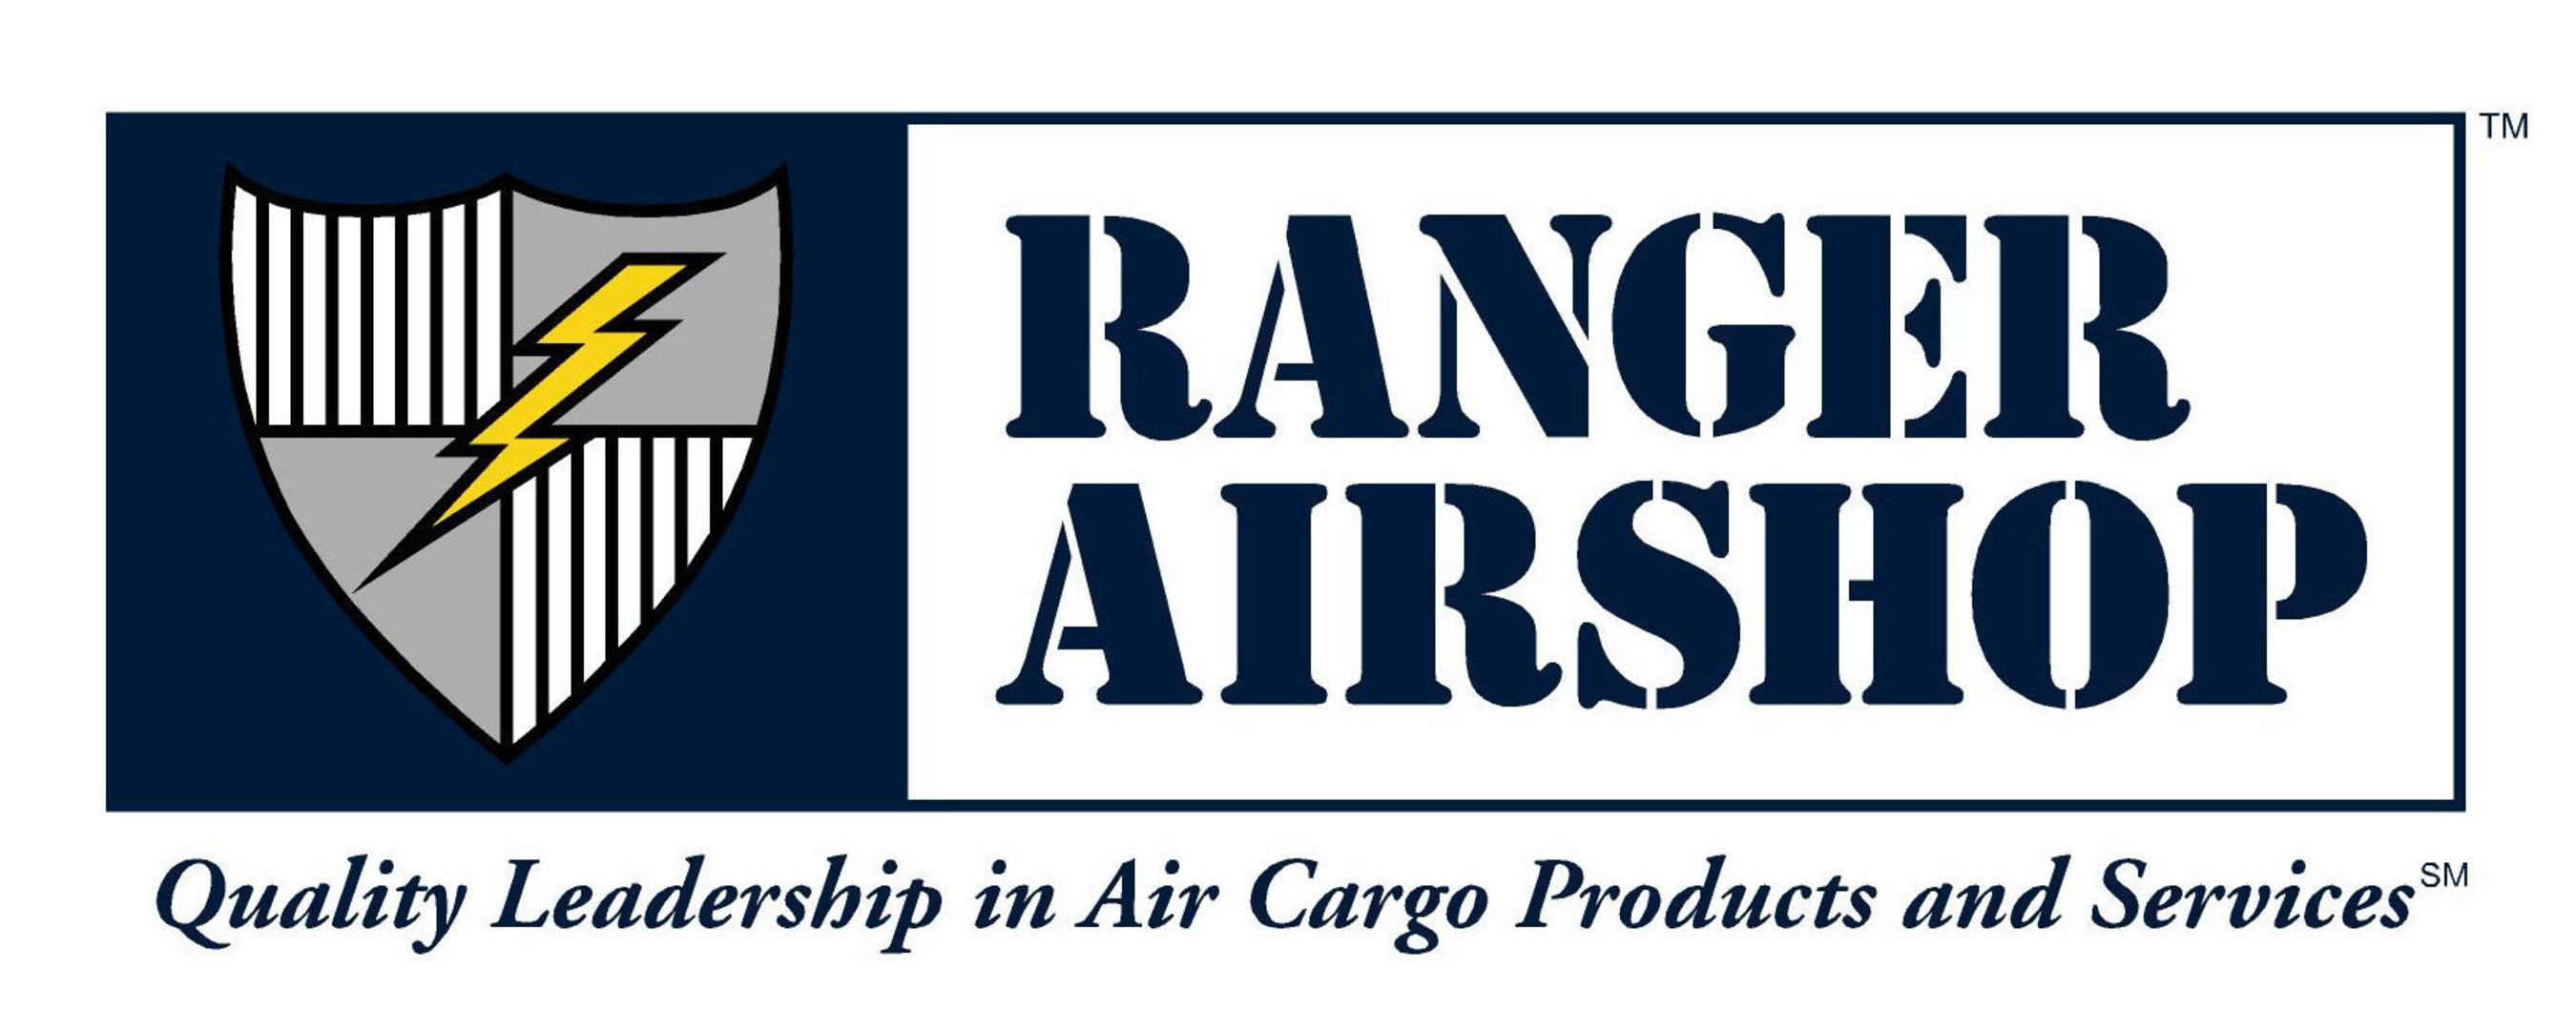 Ranger AirShop Holdings, Inc. is the latest private equity consolidation platform created and managed by Ranger Aerospace and its institutional co-investors. Since 1997, Ranger Aerospace has been buying and building-up aviation services and aerospace specialty companies. The new Ranger AirShop enterprise serves the global Air Cargo industry by manufacturing, selling, leasing, repairing, and managing 'ULD's,' with service branches at more than half of the world's Top Fifty air cargo hubs. Website: www.rangeraerospace.com